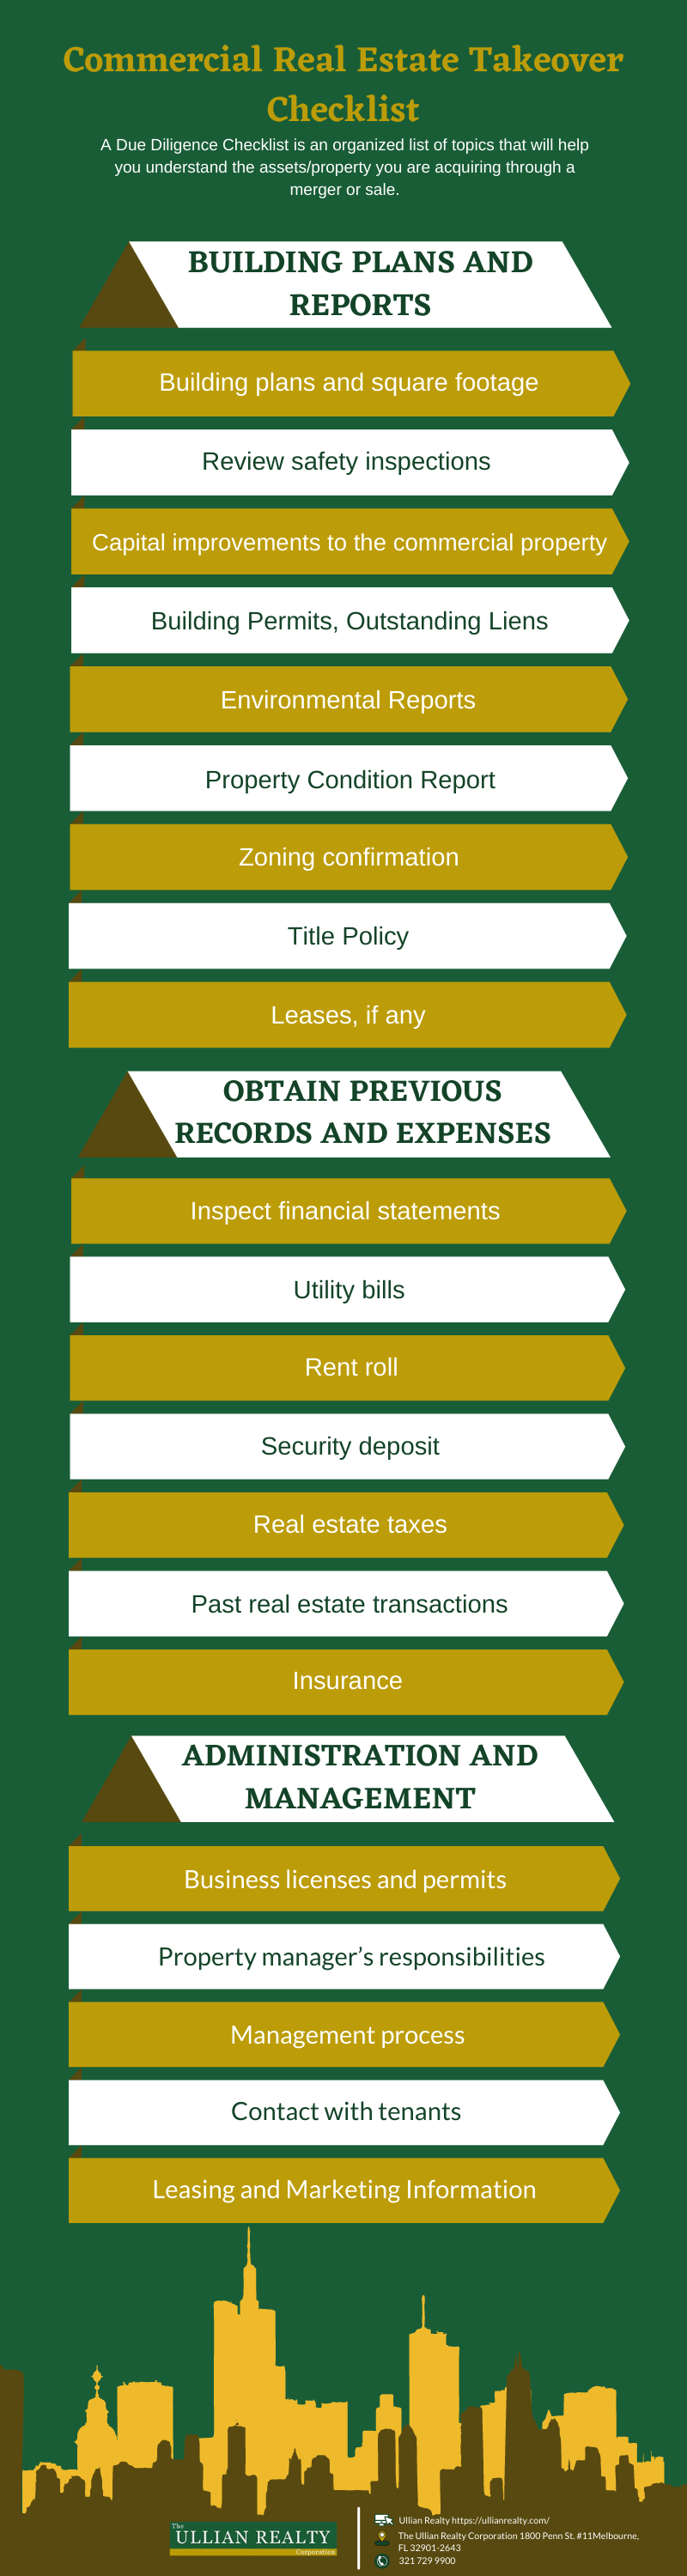 Commercial Real Estate Take Over Checklist Infographic